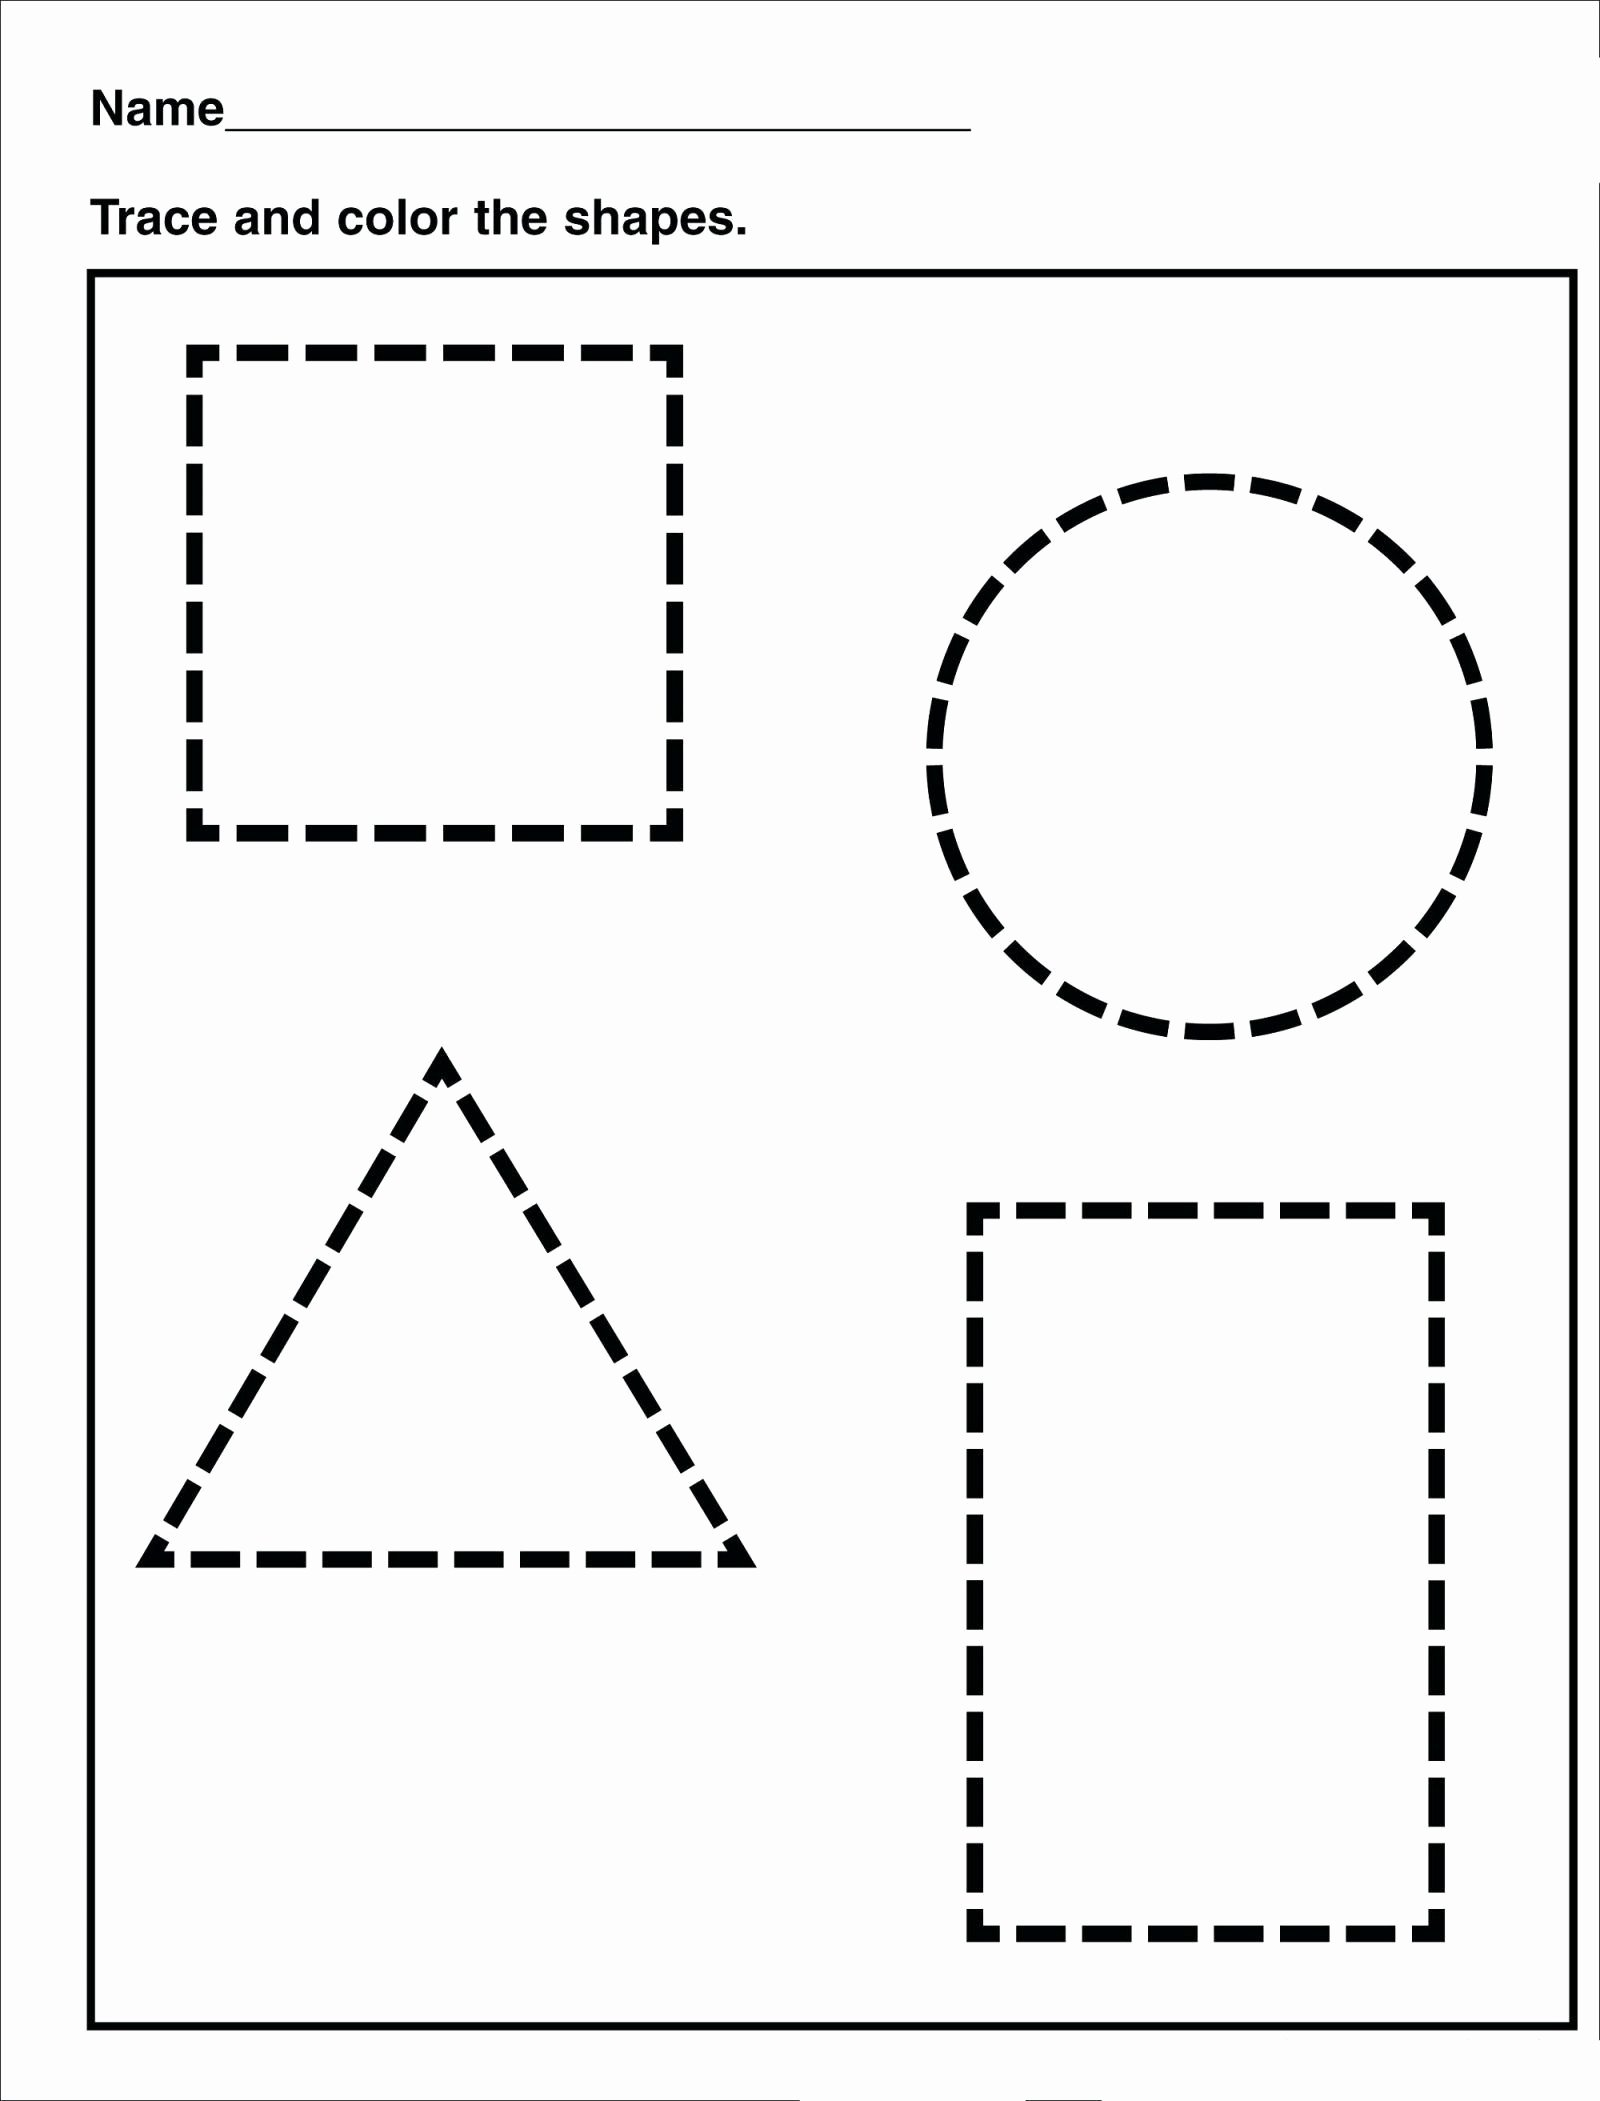 Shapes Tracing Worksheets for Preschoolers Printable Tracing Shape Tracing Preschool Free Printable